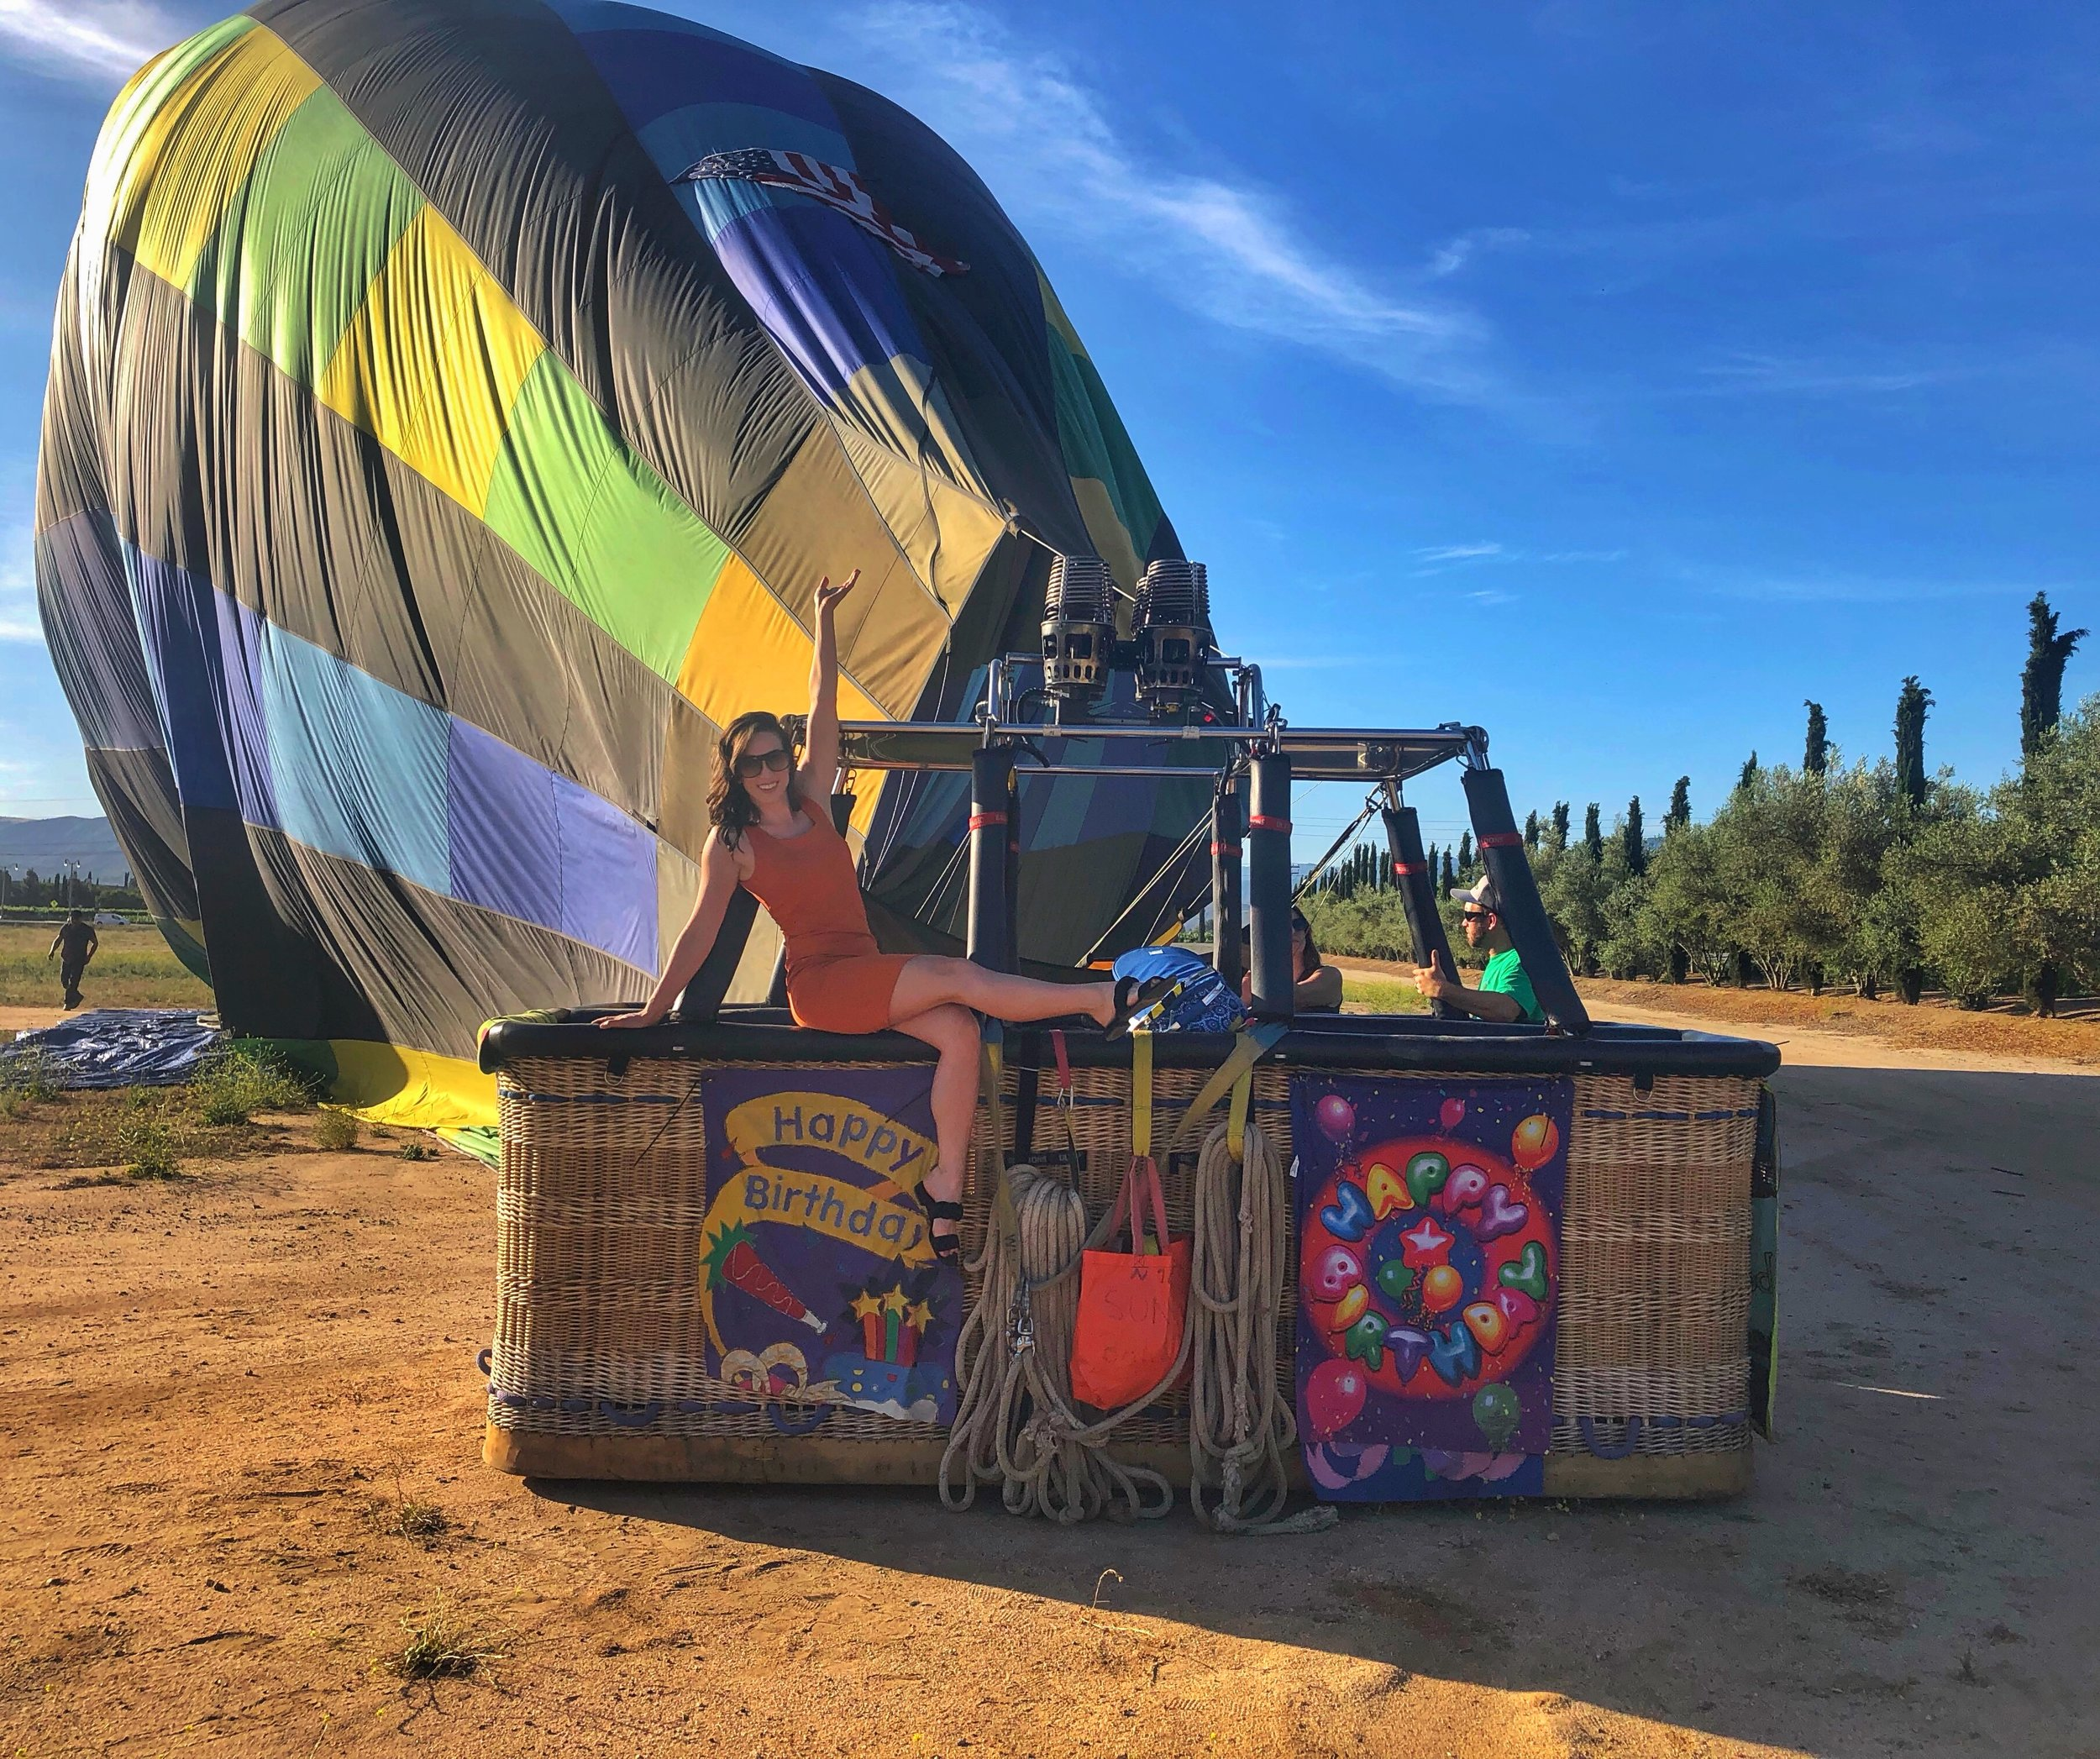 Hot Air Balloon Ride in Temecula Valley.